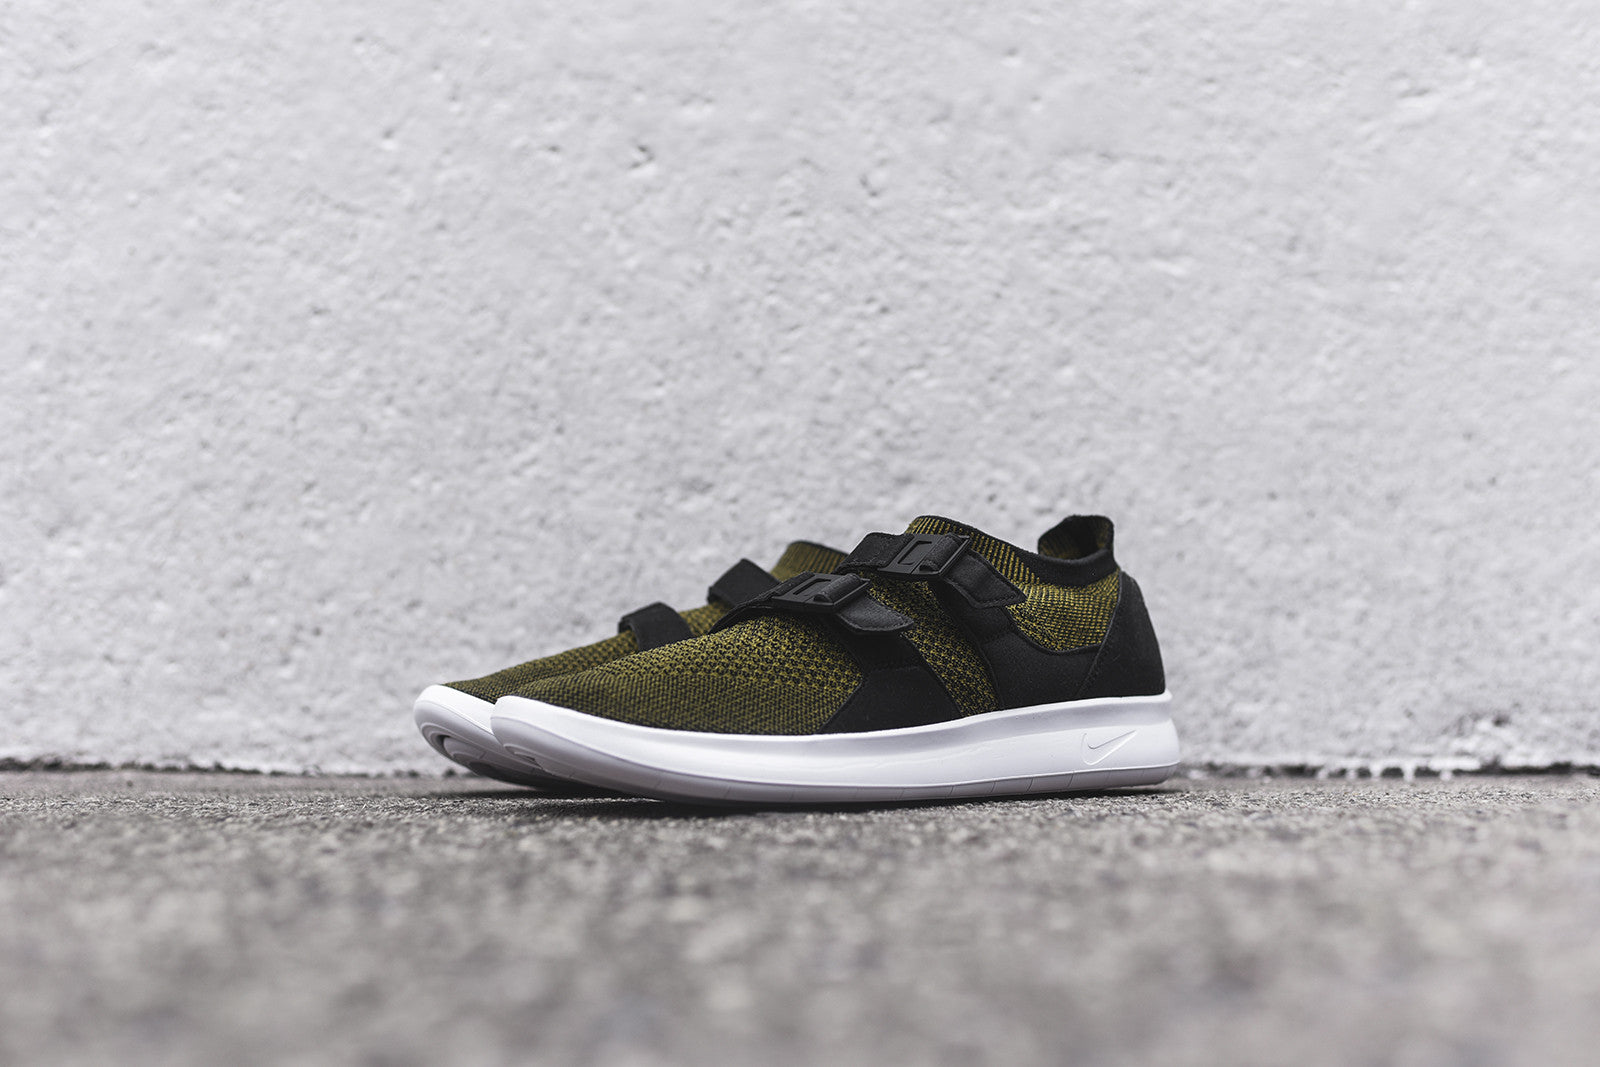 Nike Air Sock Racer Ultra FK - Olive / Black